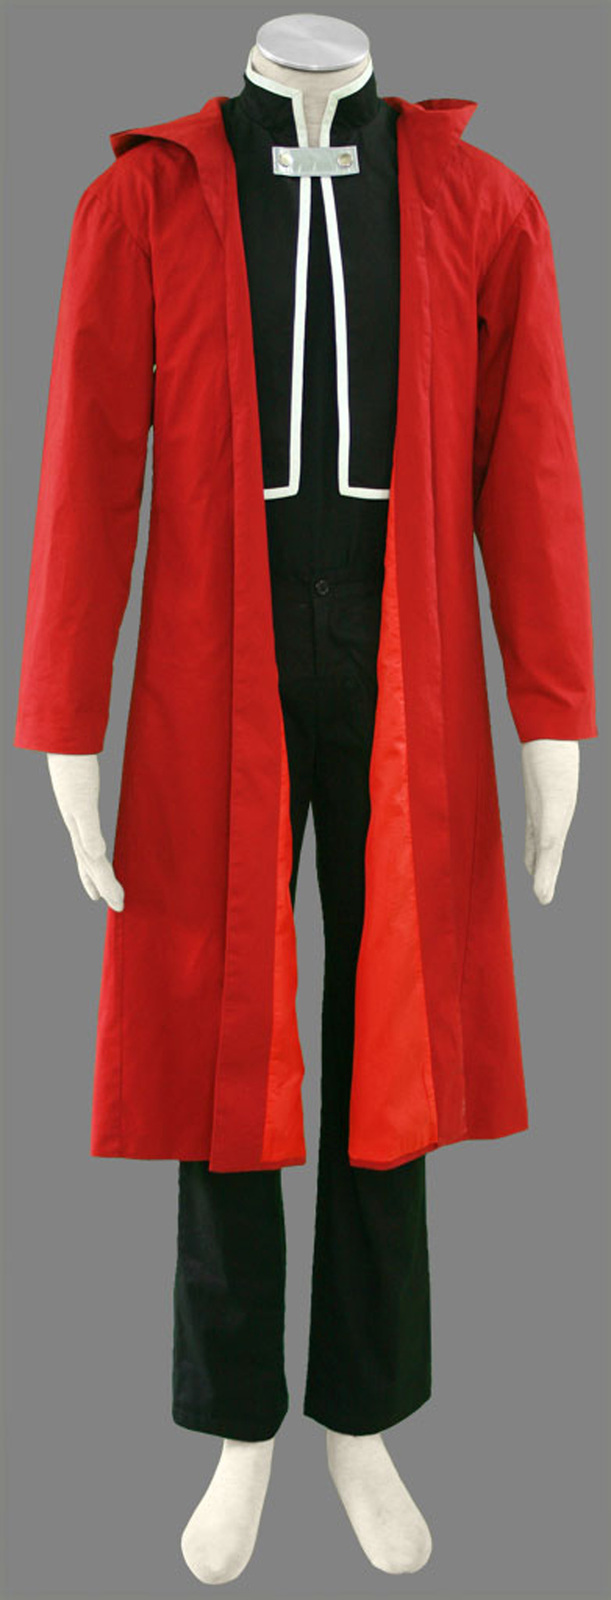 Edward Elric Black suit Red Cape Cosplay